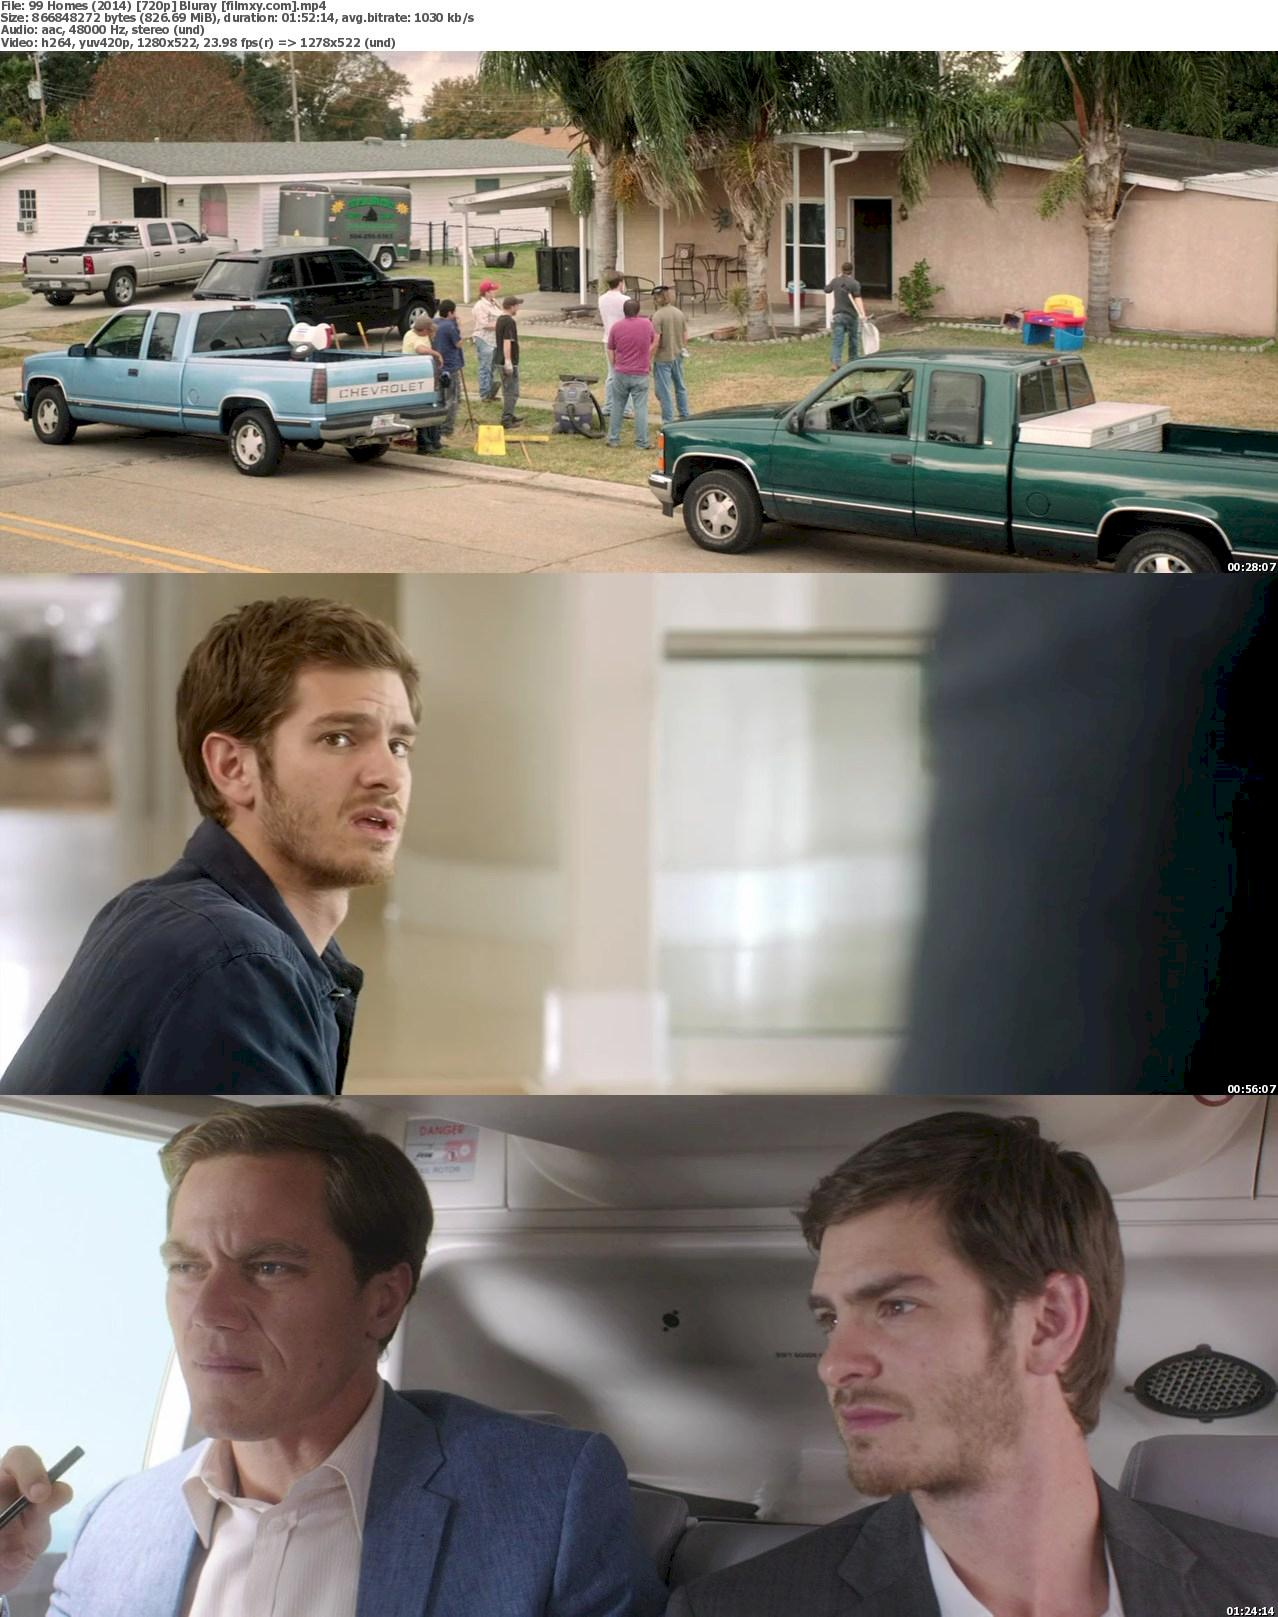 99 Homes (2014) 720p & 1080p Bluray Free Download 720p Screenshot